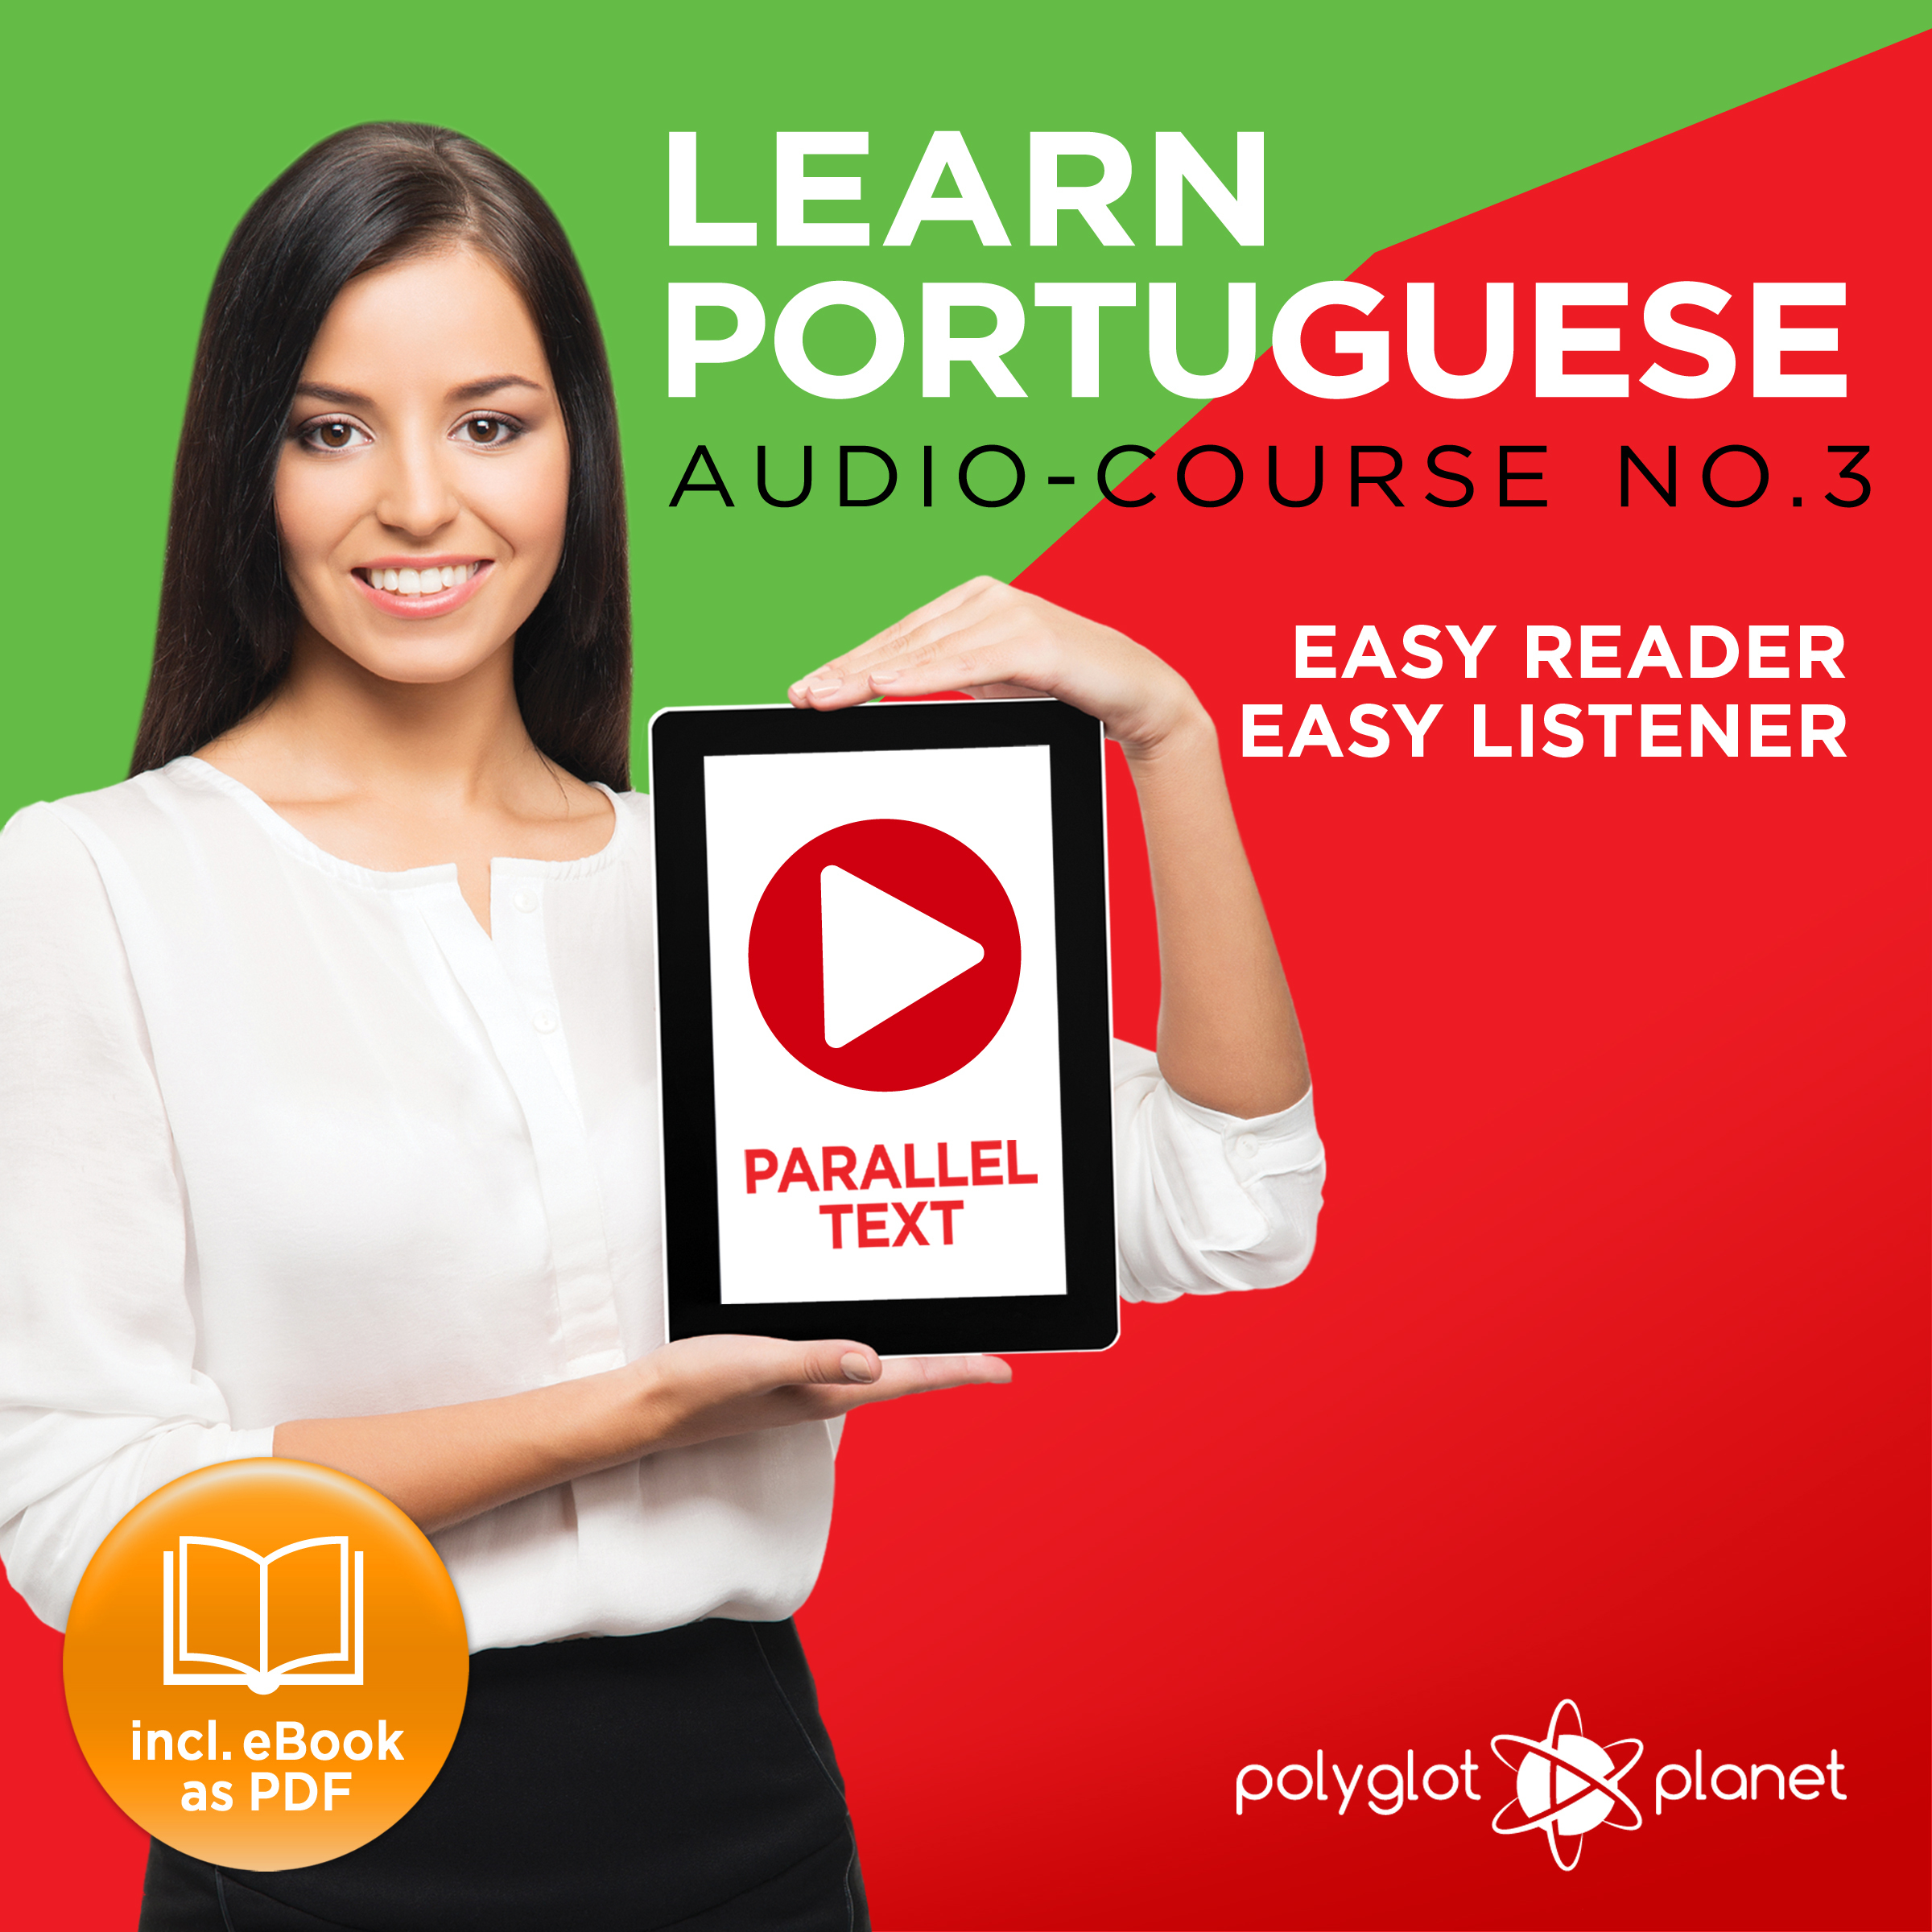 Printable Learn Portuguese - Easy Reader - Easy Listener - Parallel Text - Portuguese Audio Course No. 3 - The Portuguese Easy Reader - Easy Audio Learning Course Audiobook Cover Art